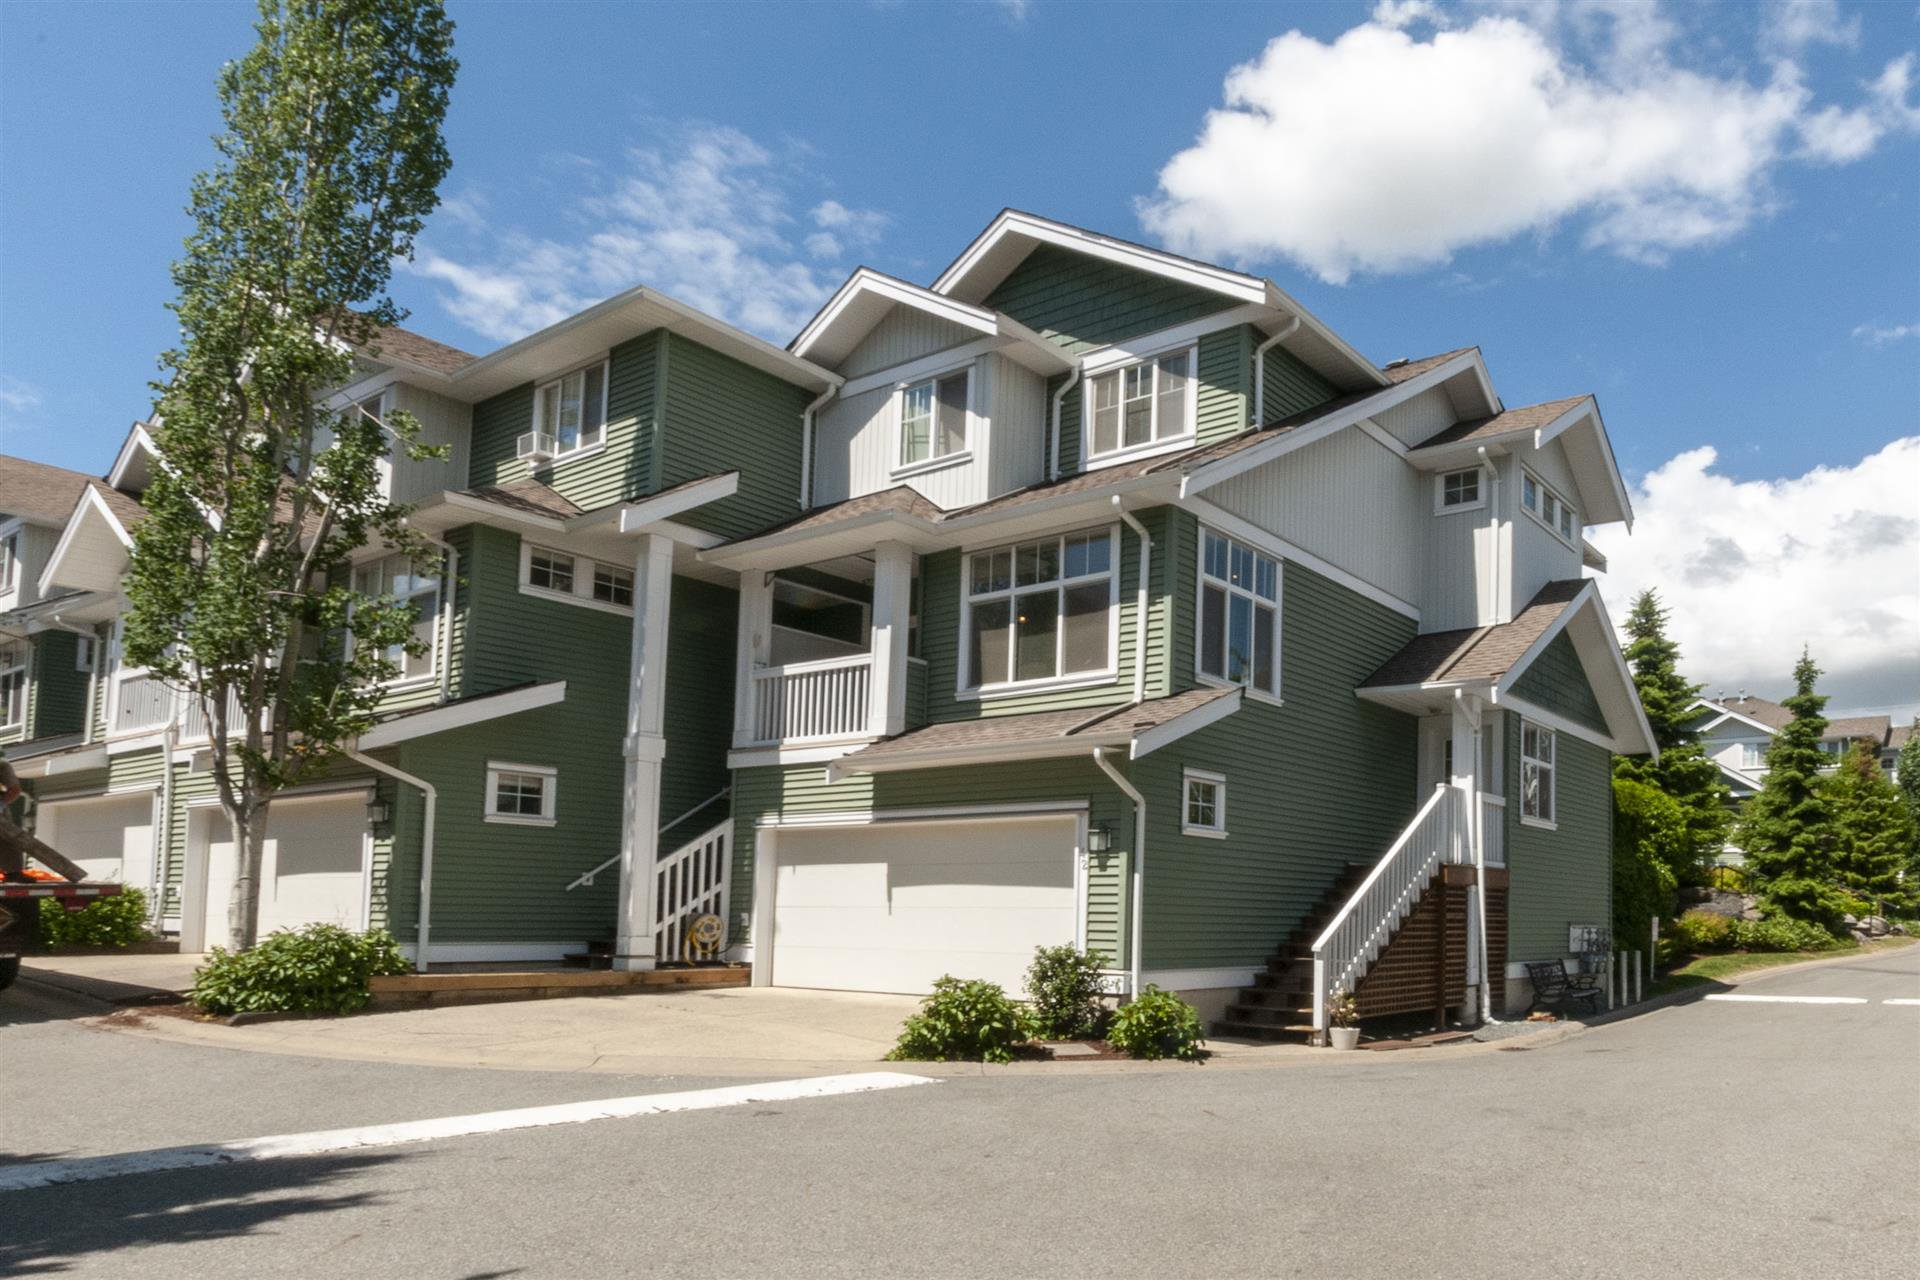 Main Photo: 42-6785 193rd Street Surrey in Surrey: Clayton Townhouse for sale (Cloverdale)